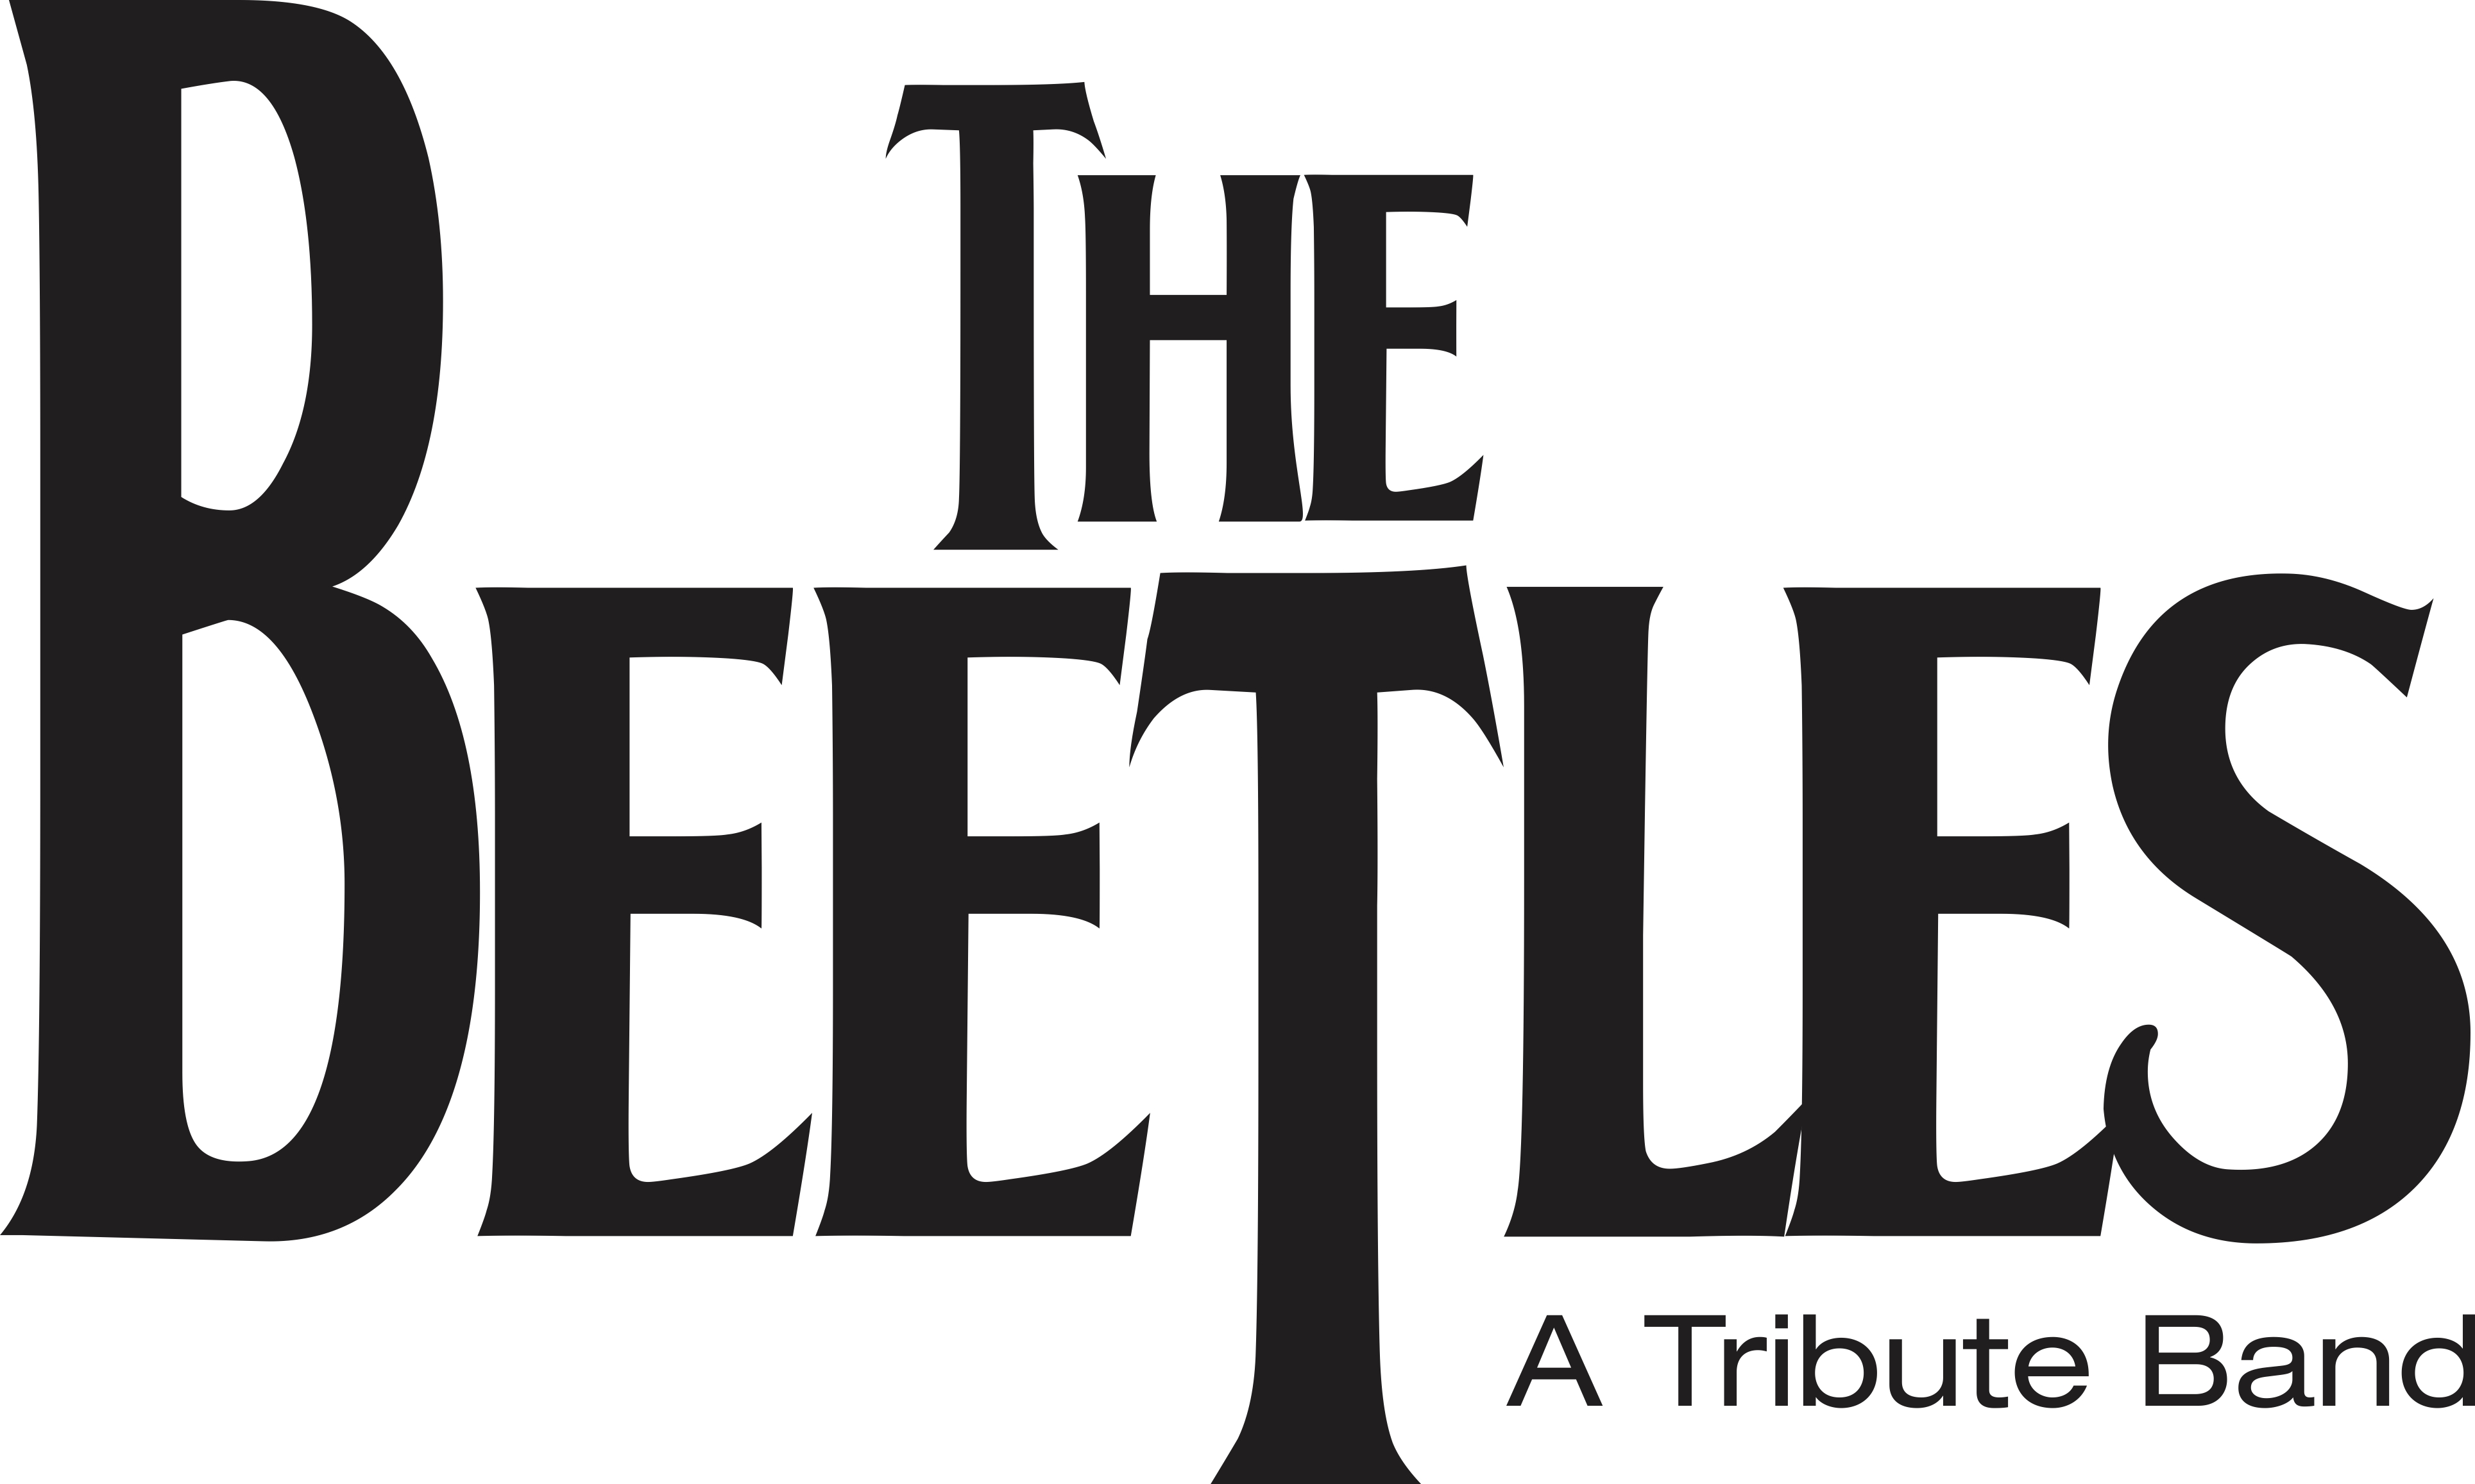 The Beetle - tribute daily